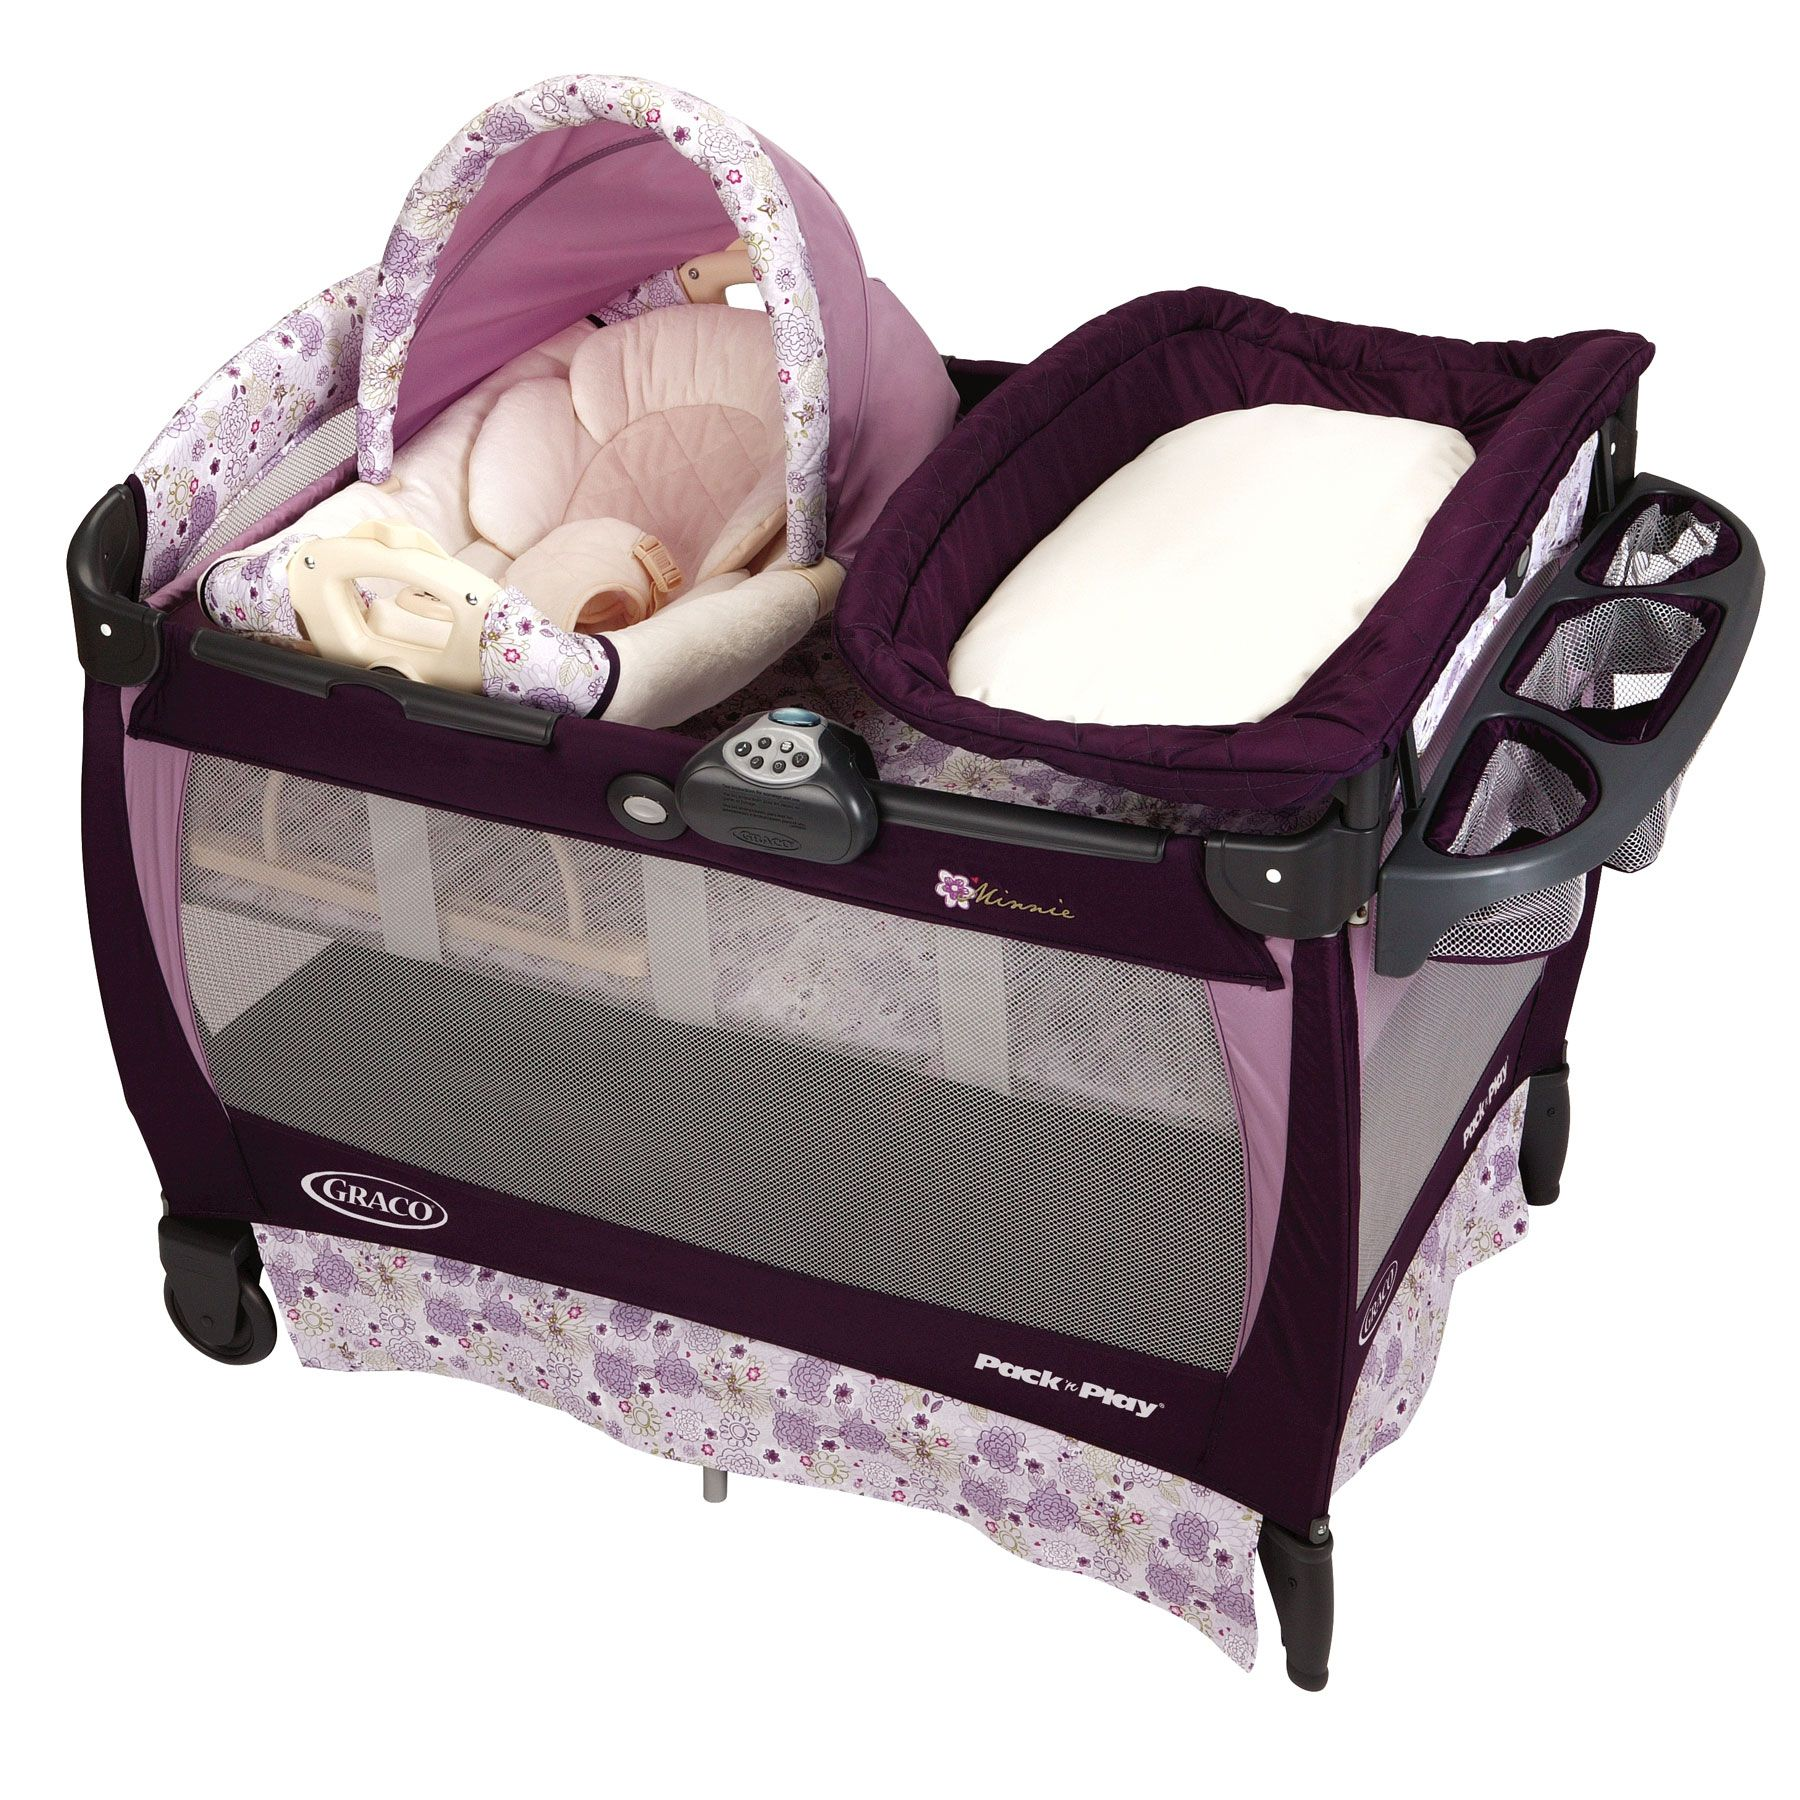 Baby Room Playpen Pack N Play Bassinet Changing Table And Playpen Baby